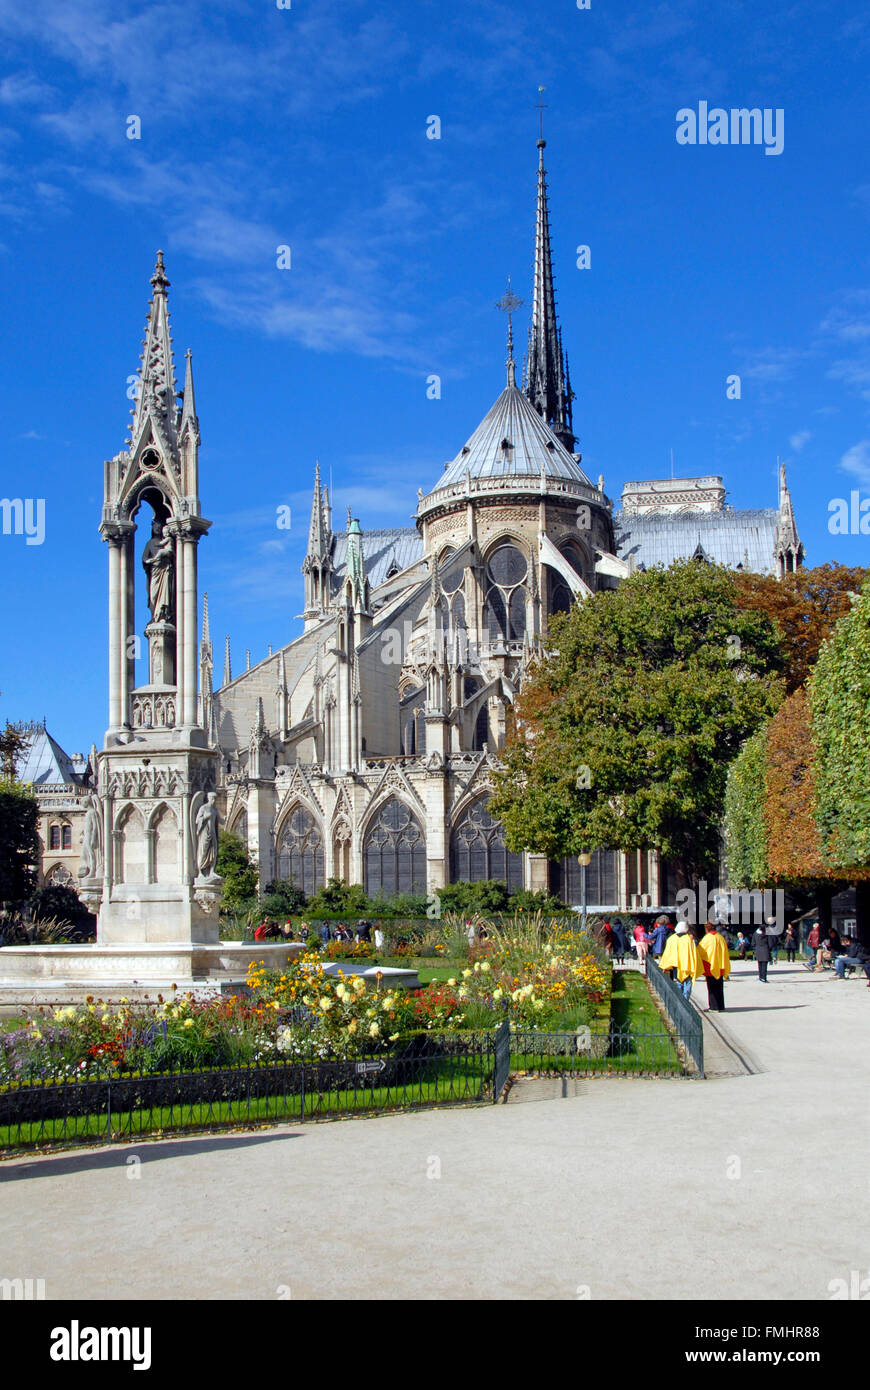 Gardens at rear of Nôtre Dame cathedral, Paris - Stock Image